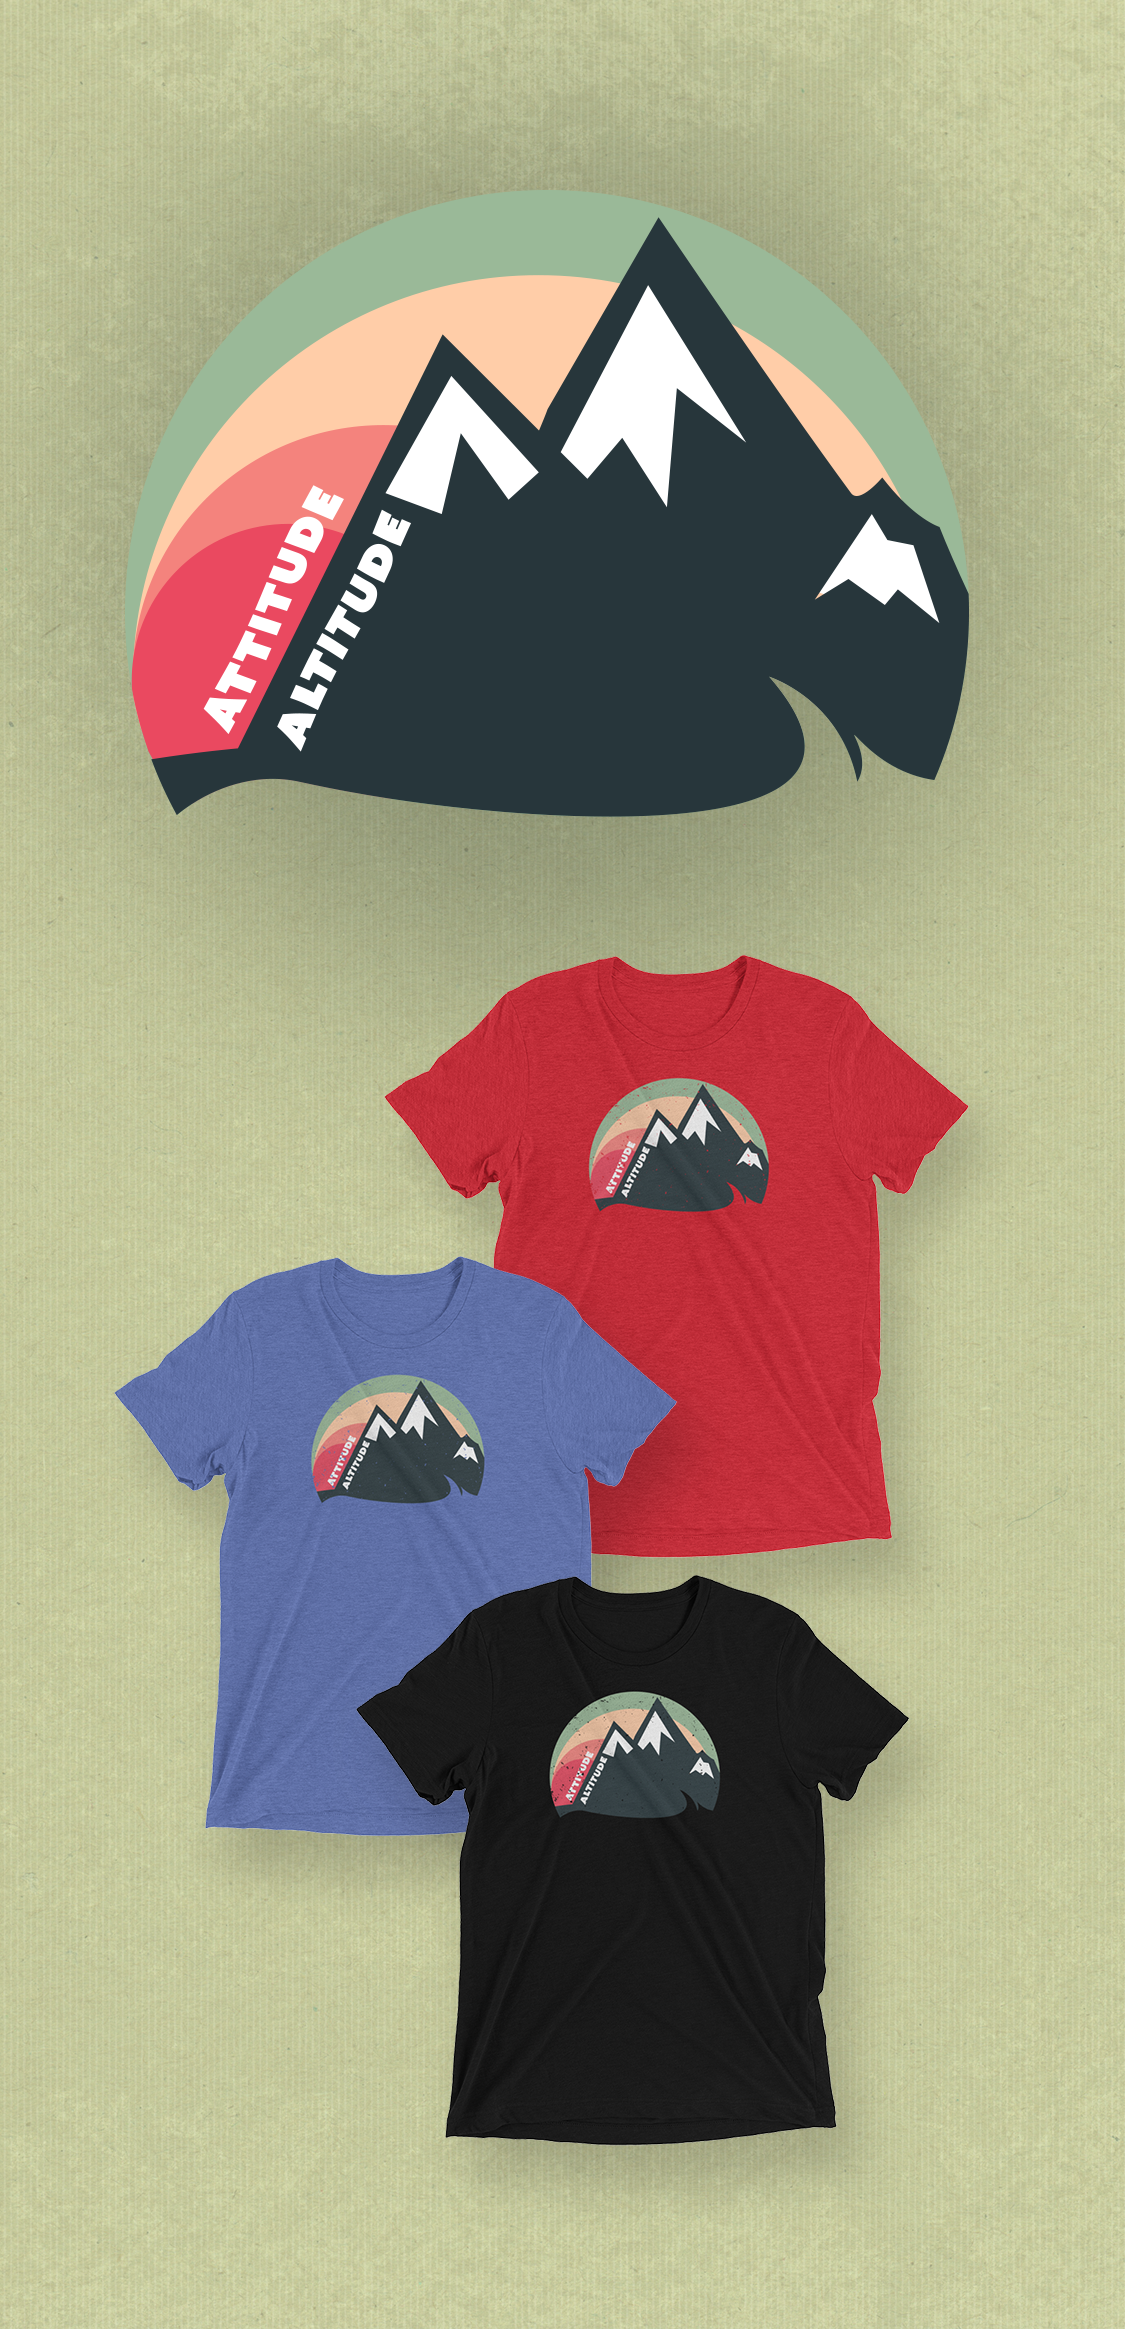 56f0e452 Attitude or Altitude; if you love the mountain life its probably both!  Climb into these super soft vintage t-shirts and be outdoorsy.